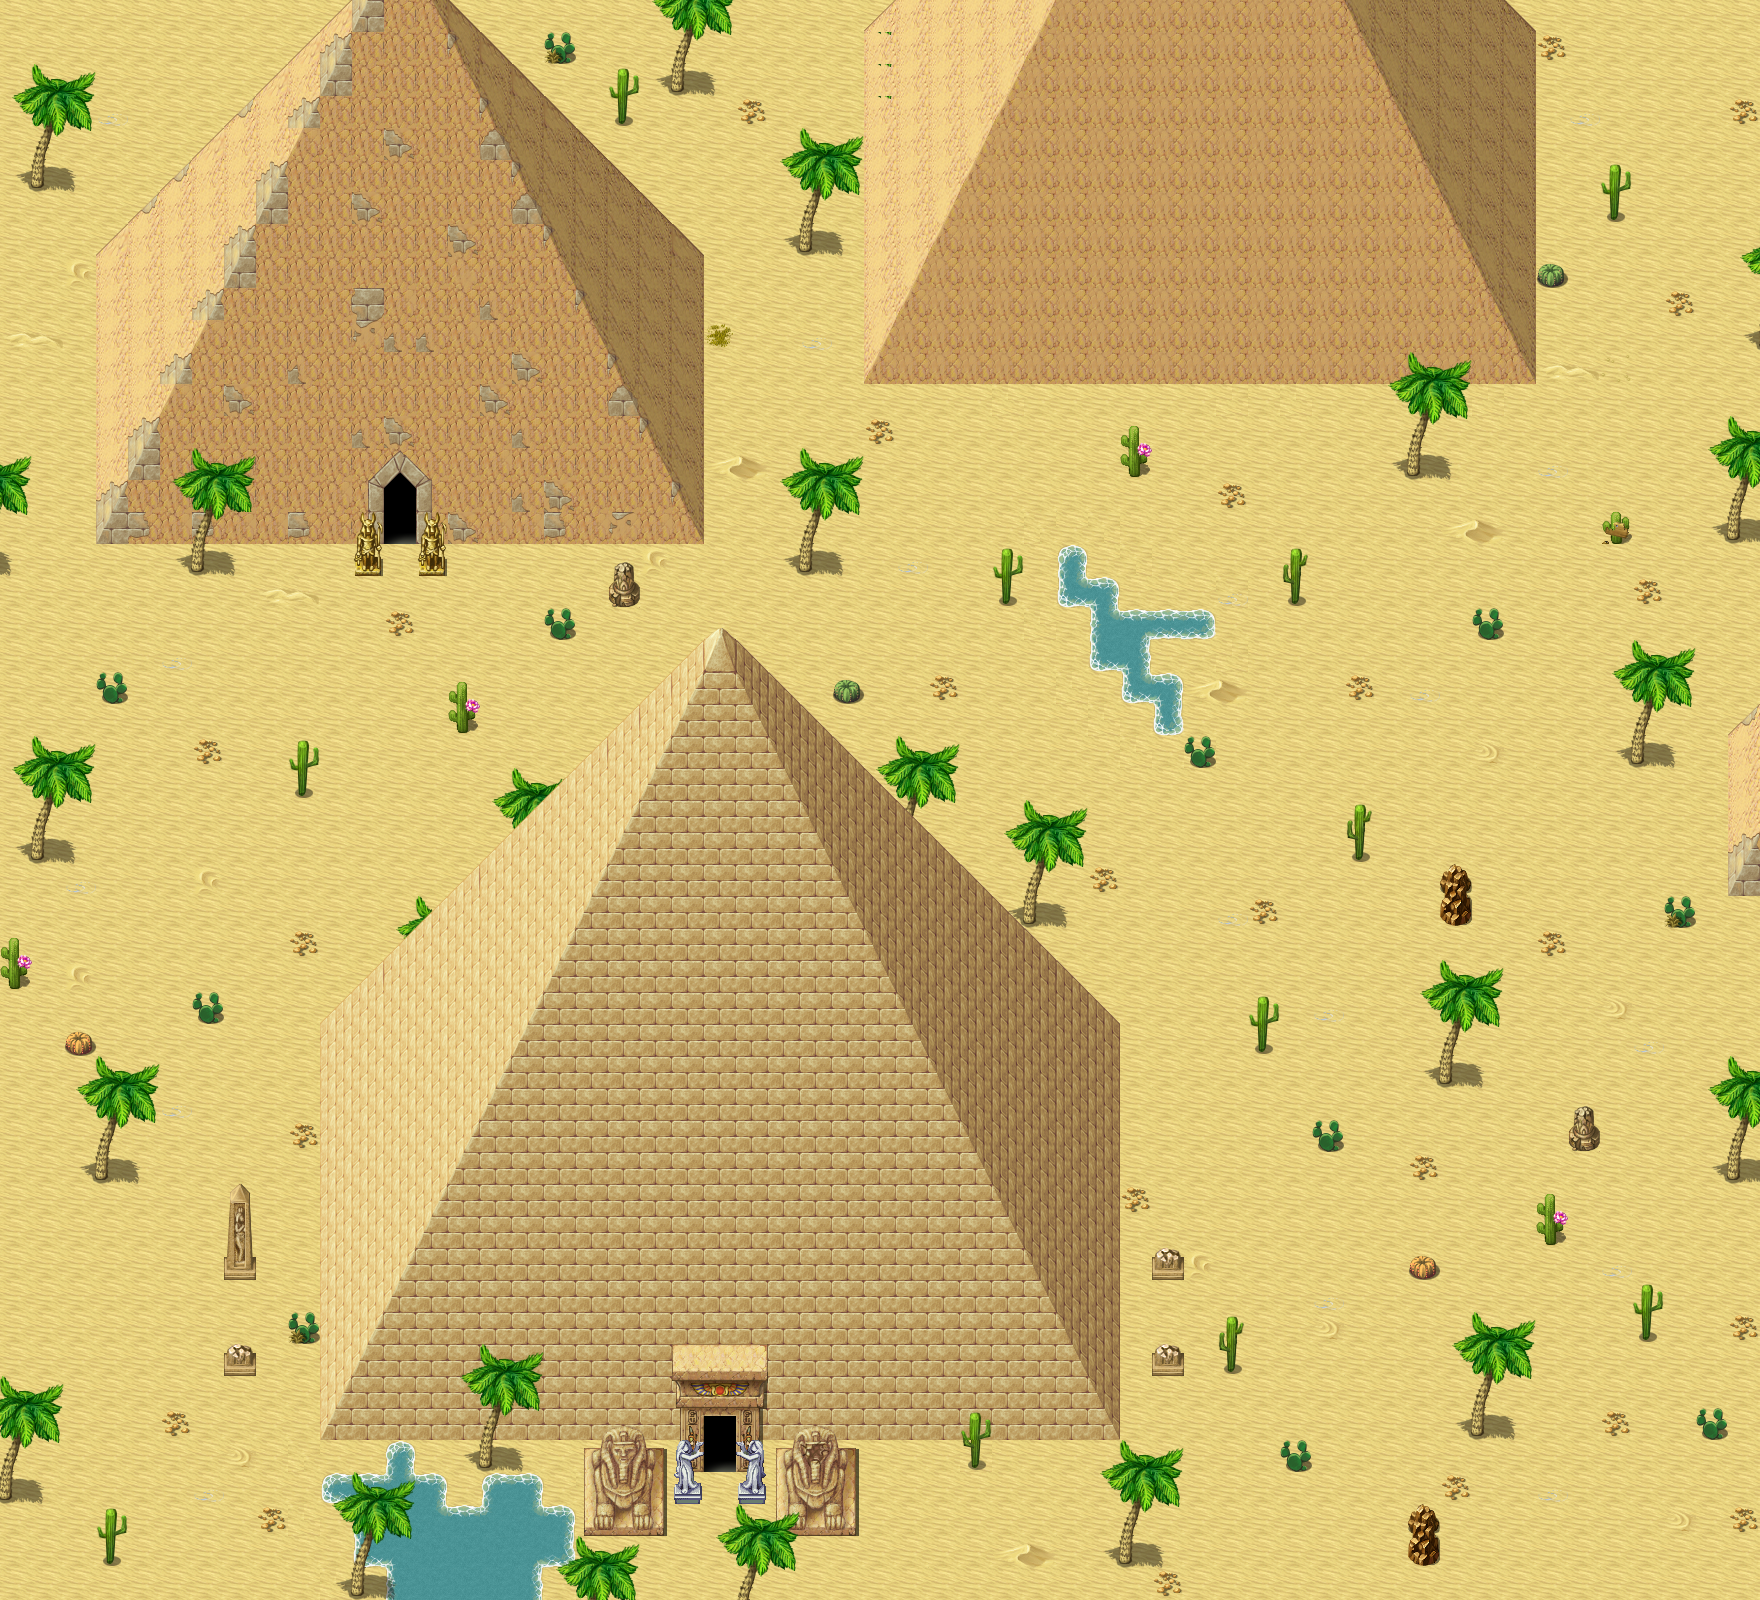 Map099.png